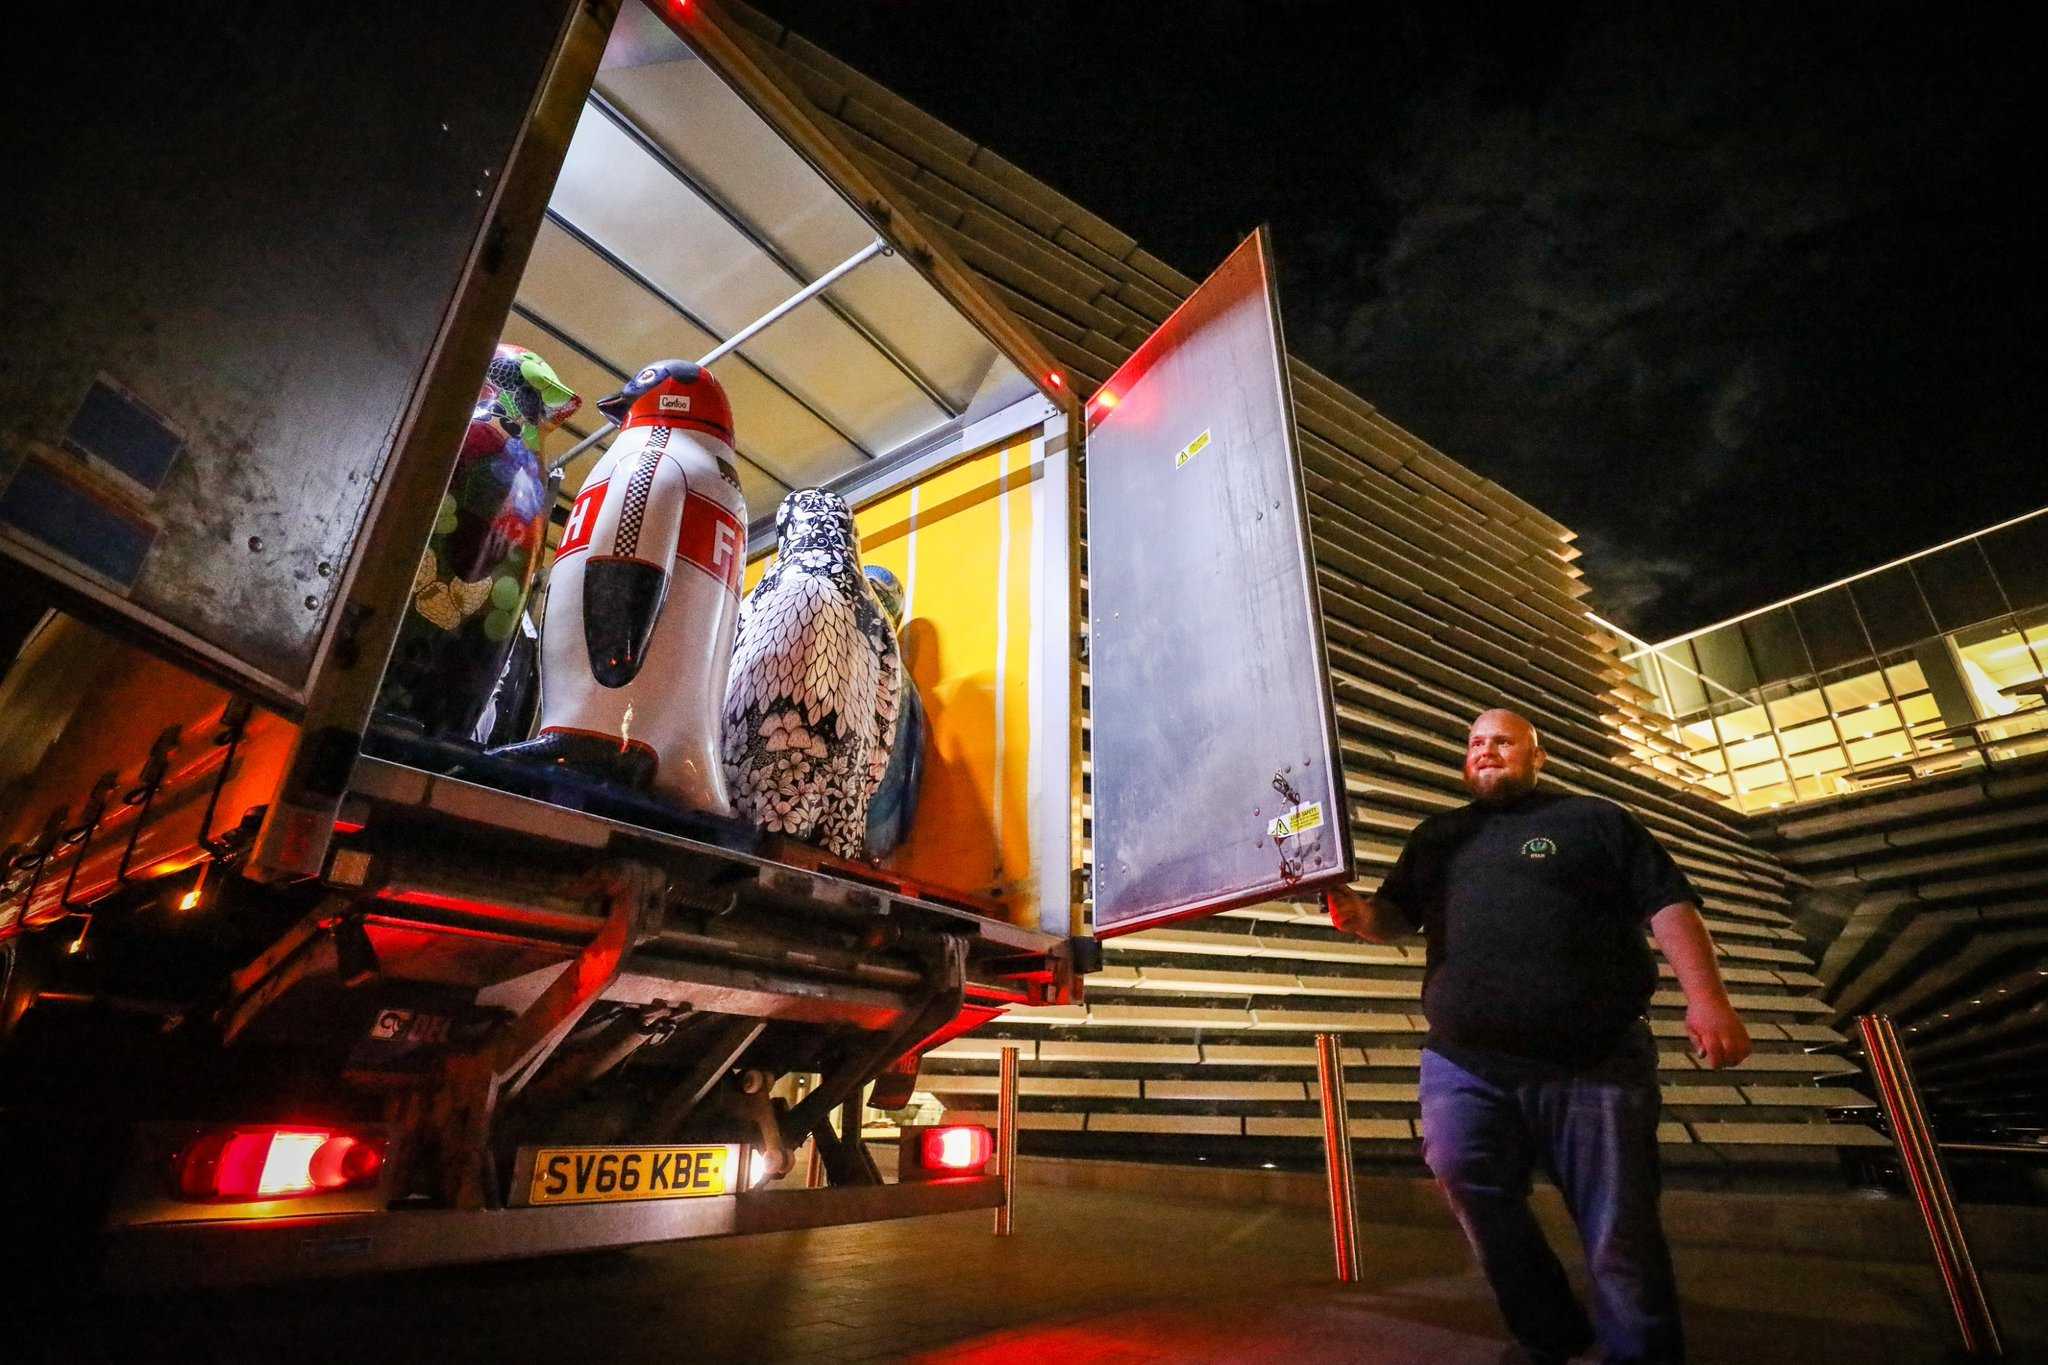 The Maggie's Penguins being taken off to their new homes after the auction in V&A Dundee.